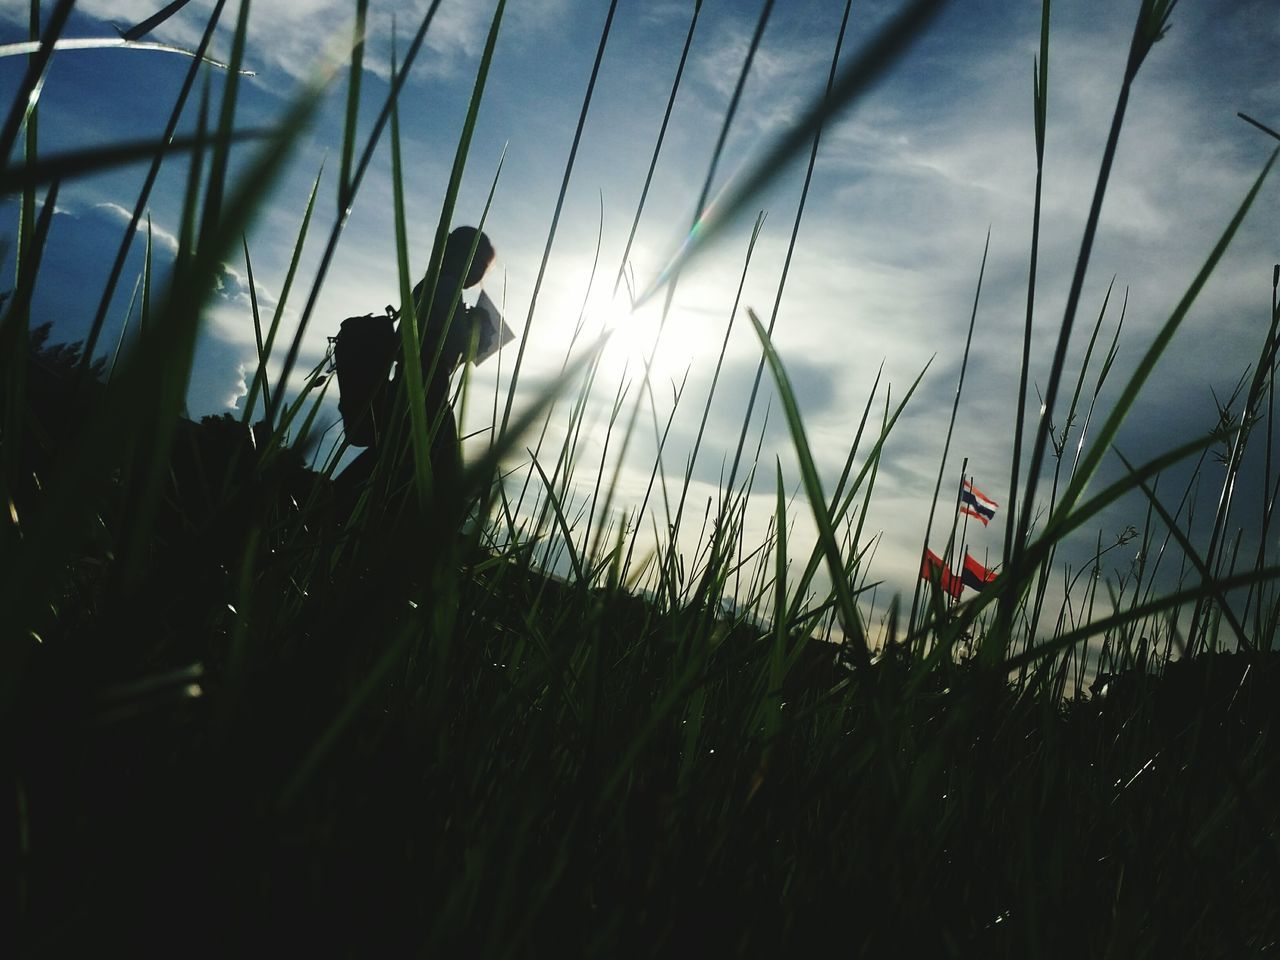 field, grass, growth, nature, silhouette, plant, agriculture, sky, outdoors, day, beauty in nature, one person, people